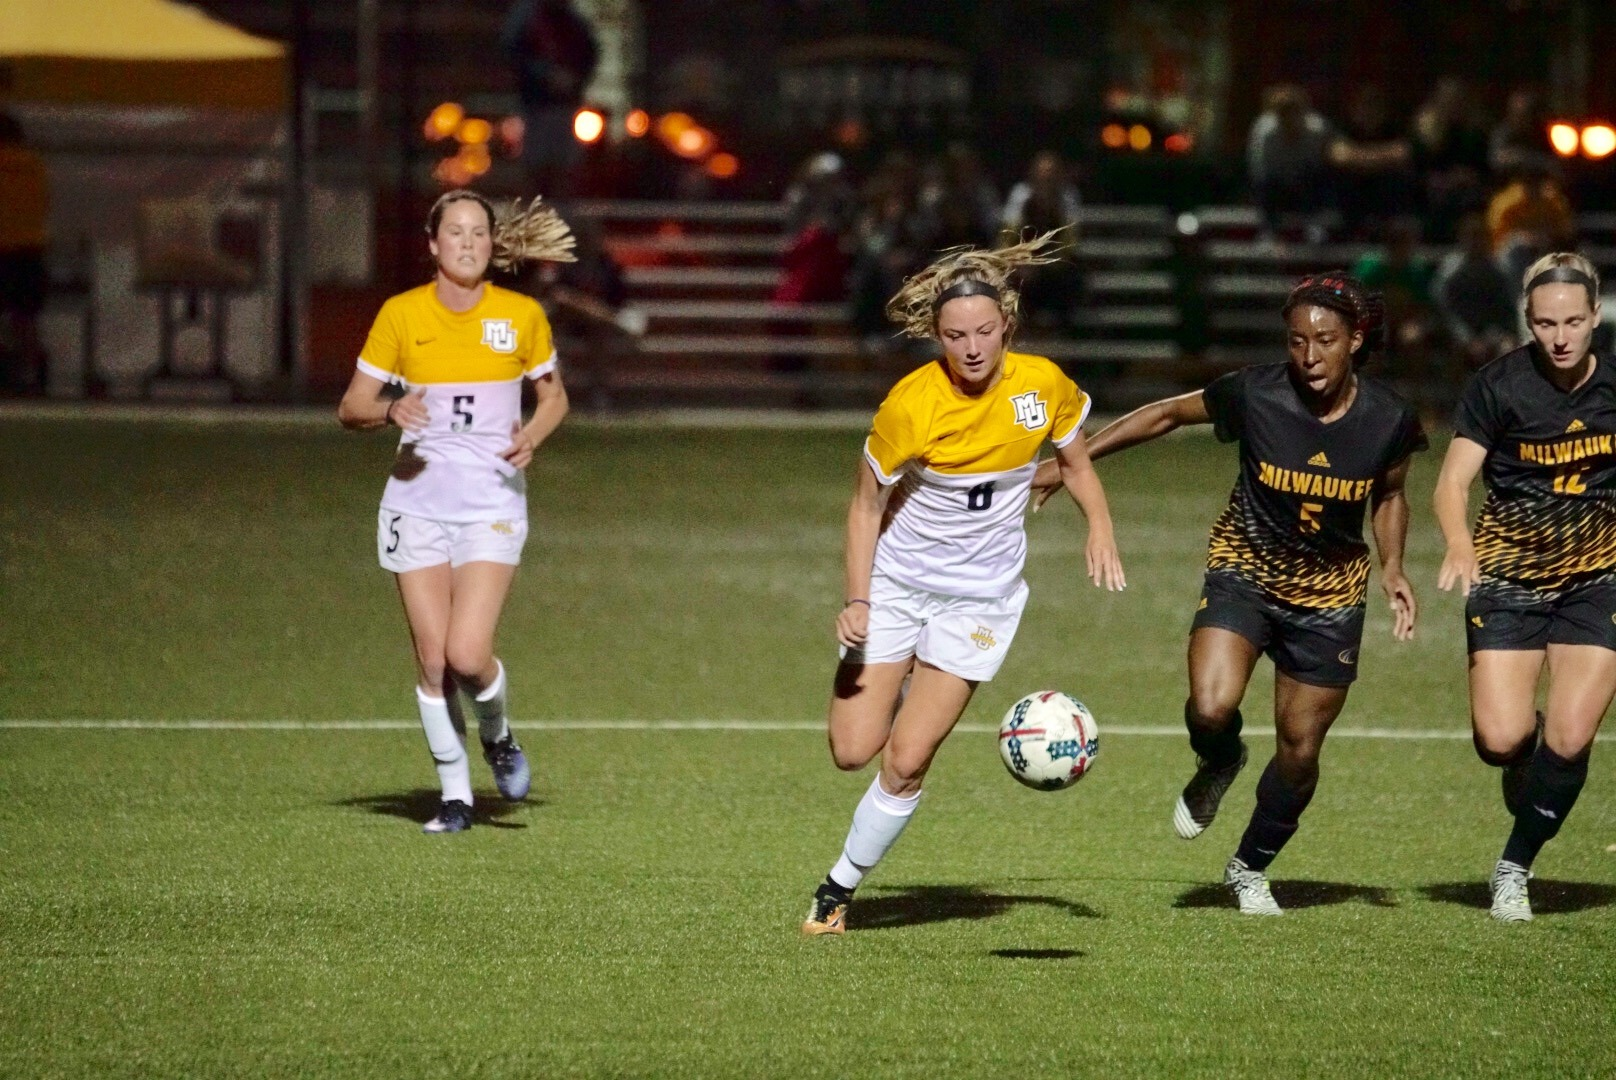 The Golden Eagles and Panthers met for the 26th time on Sunday night at Engelmann Stadium (photo: Russ Handwork).